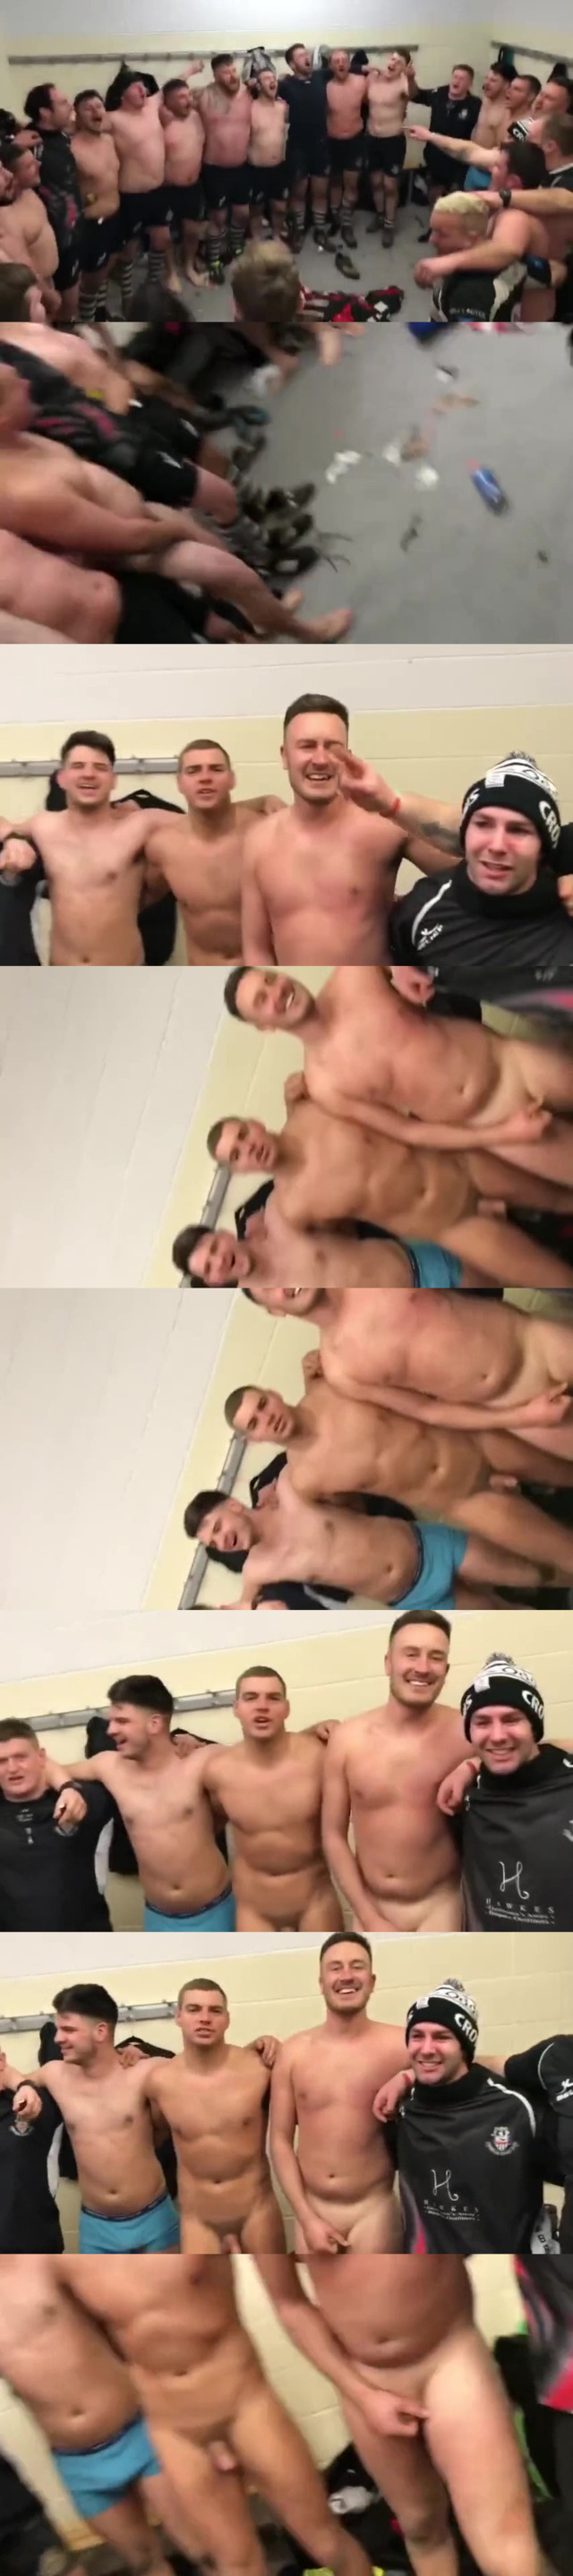 ruggers naked in the locker room